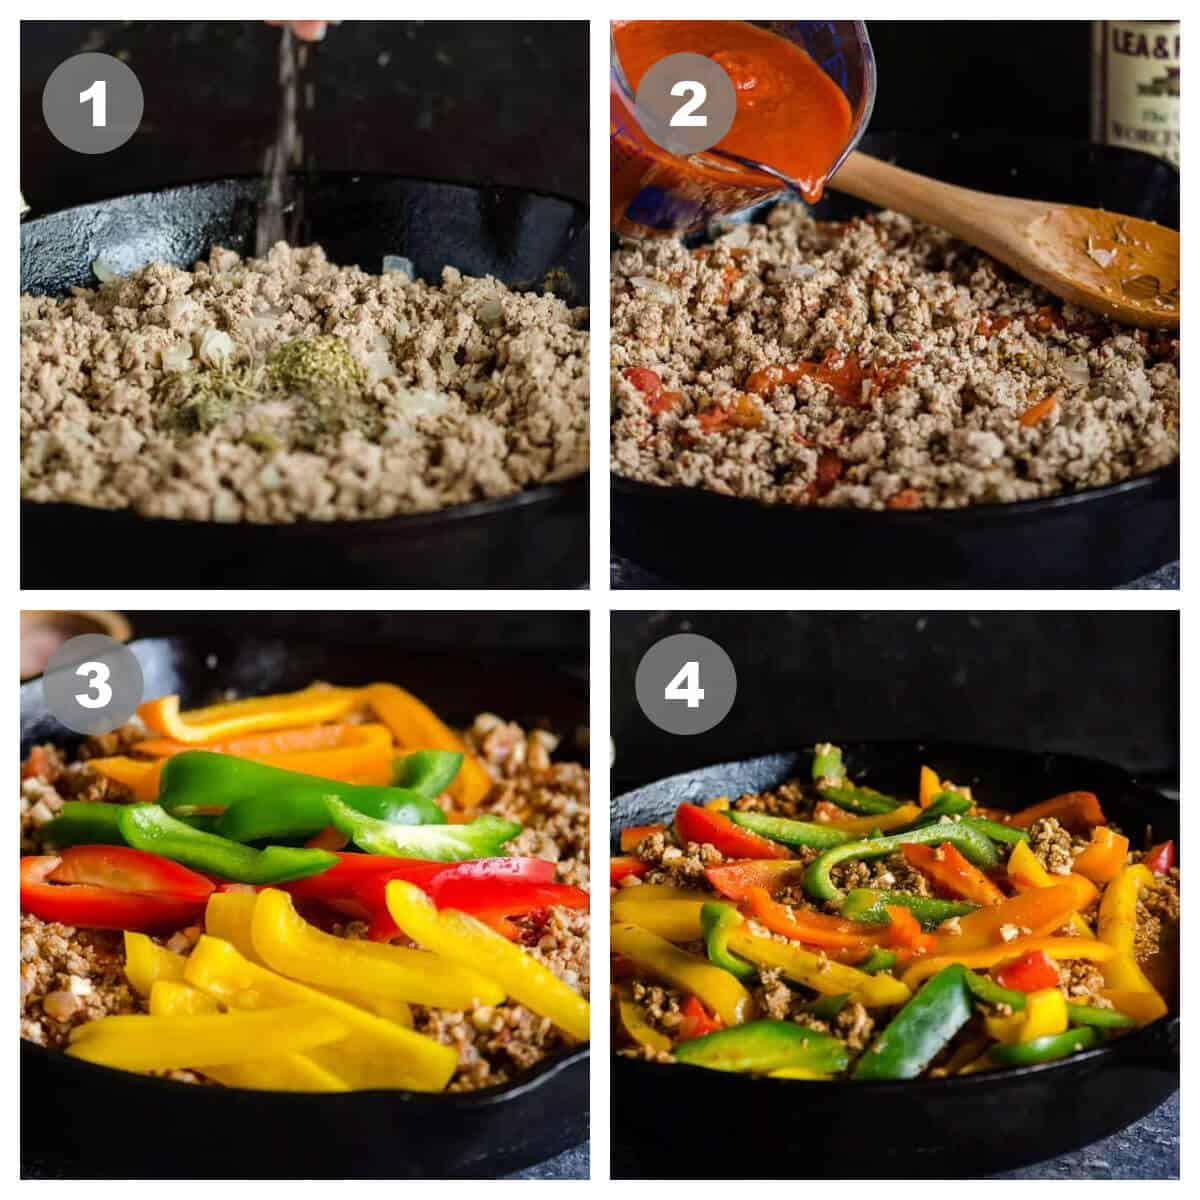 a collage of 4 photos showing steps to make unstuffed peppers; 1, browning meat/onions add spices; 2, adding sauce; 3, adding sliced peppers; 4, what it looks like after peppers are simmered.